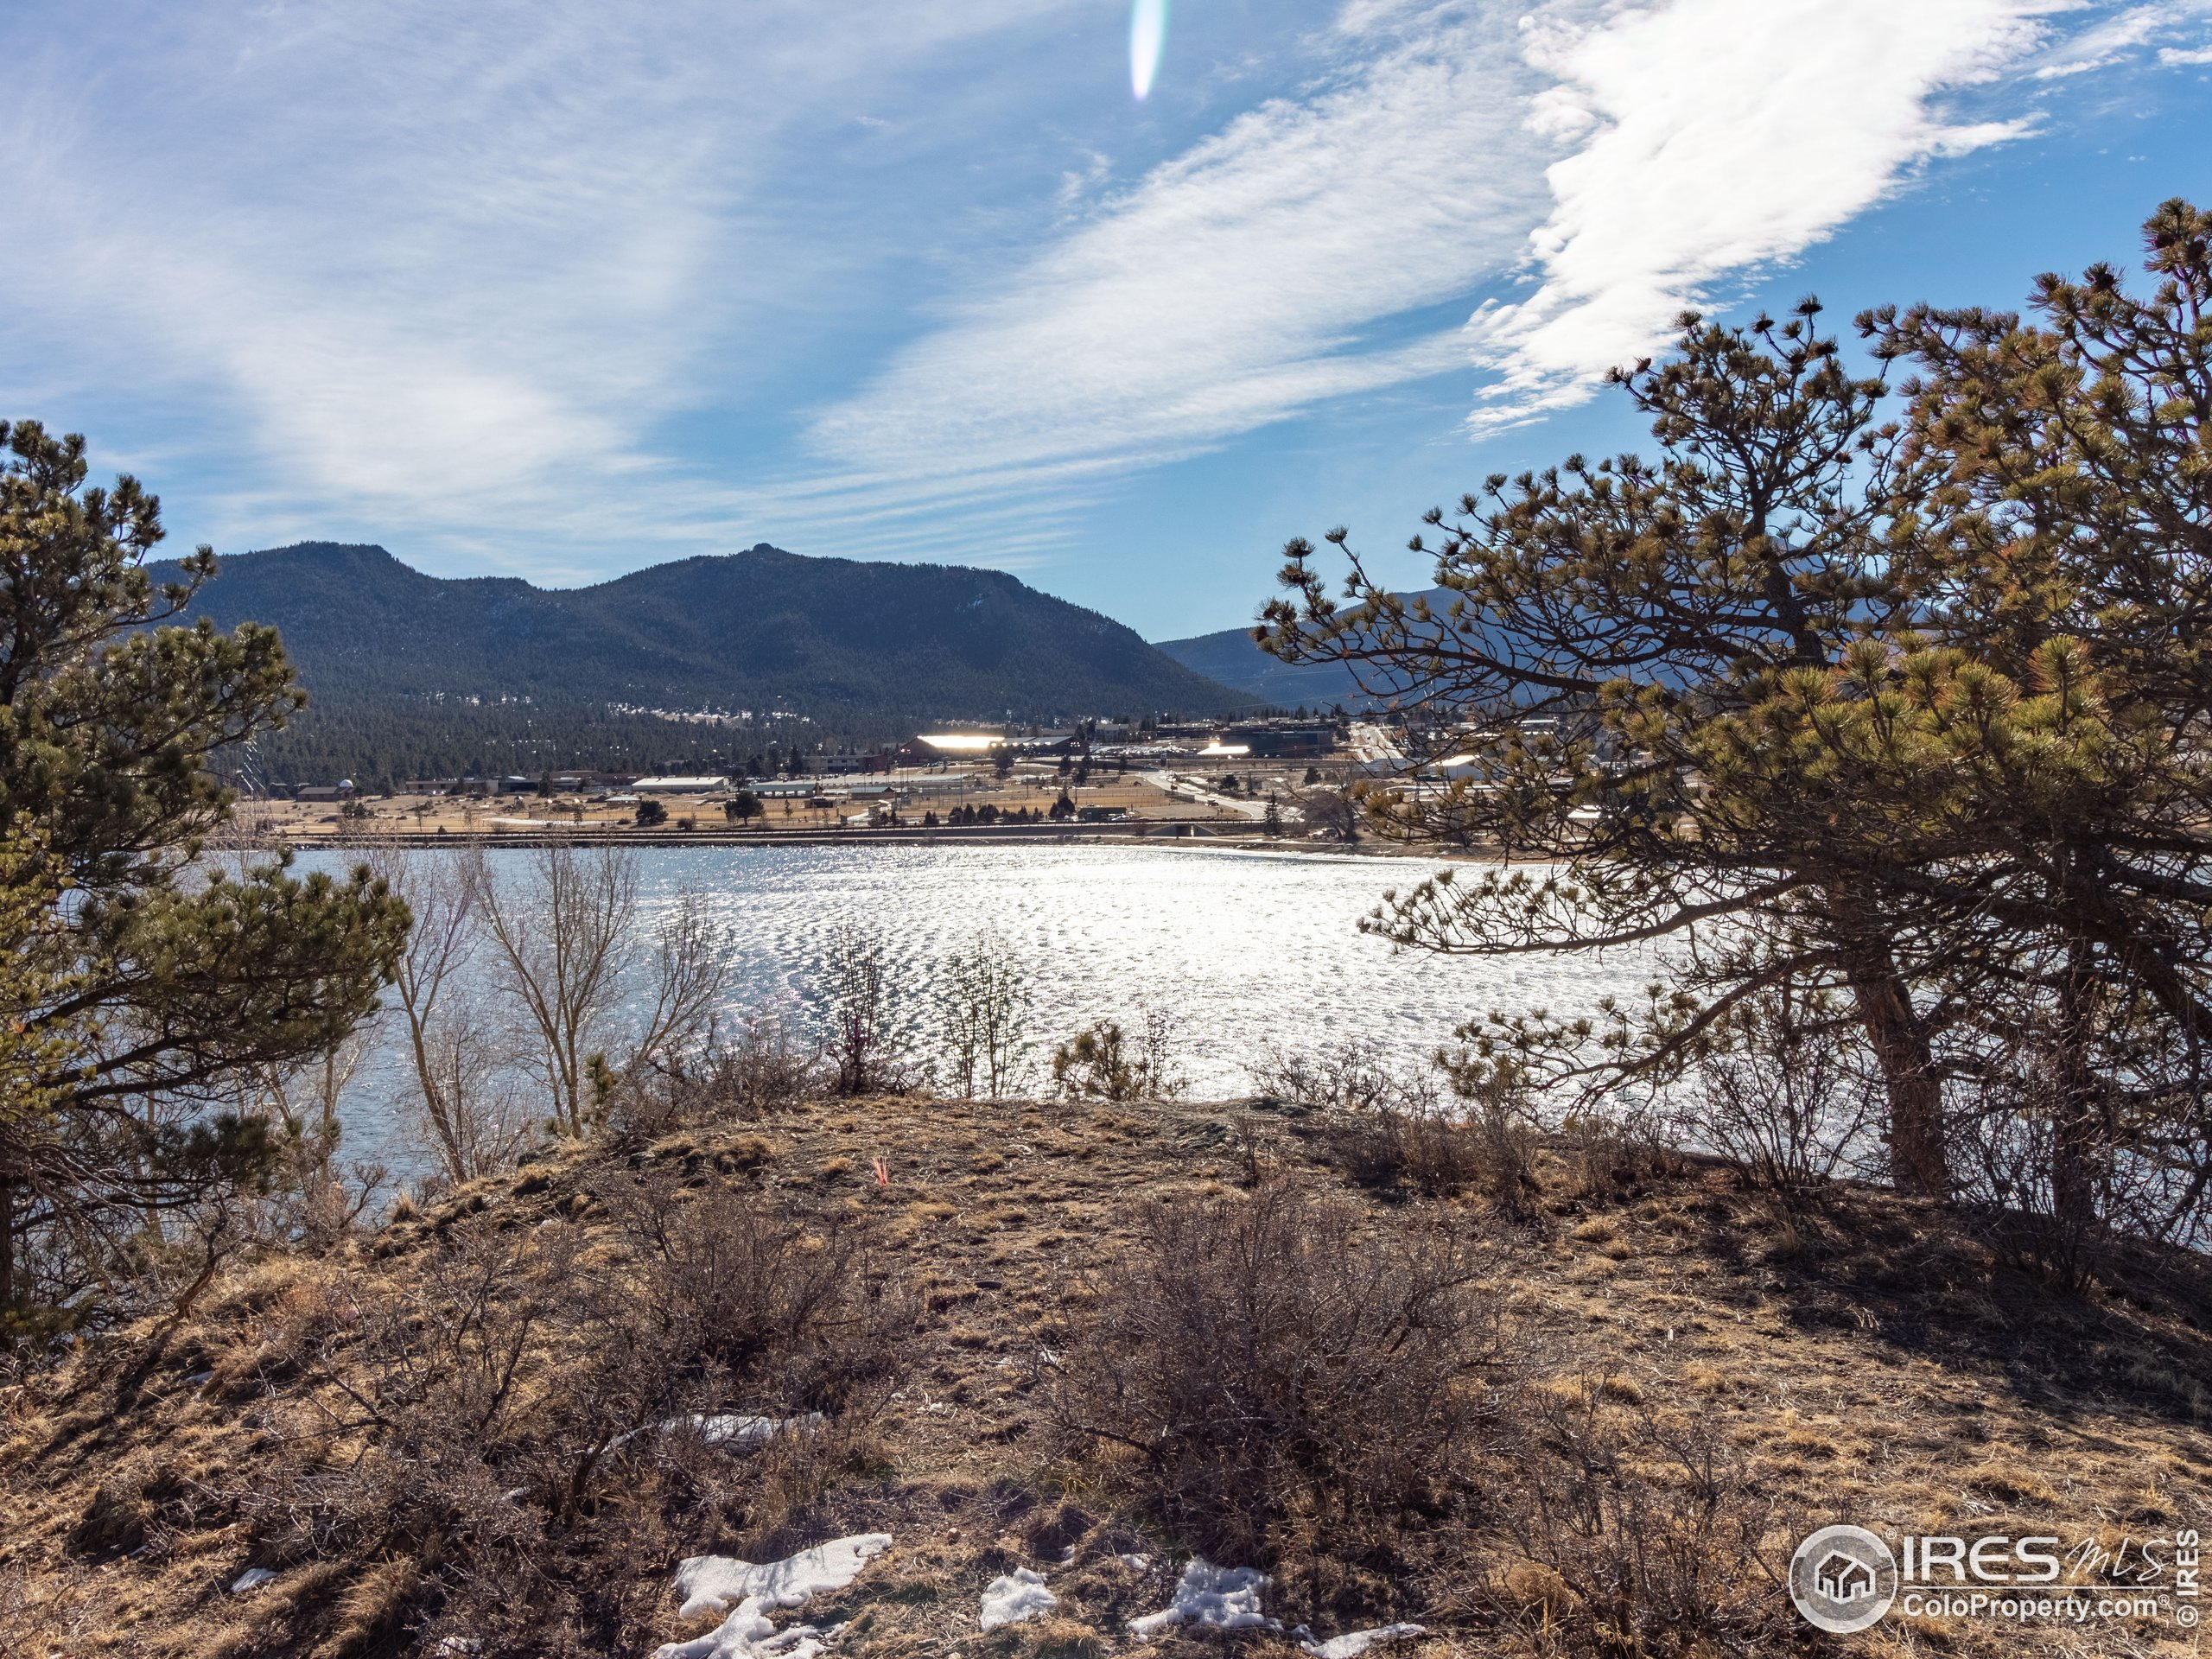 Shimmering waters of Lake Estes